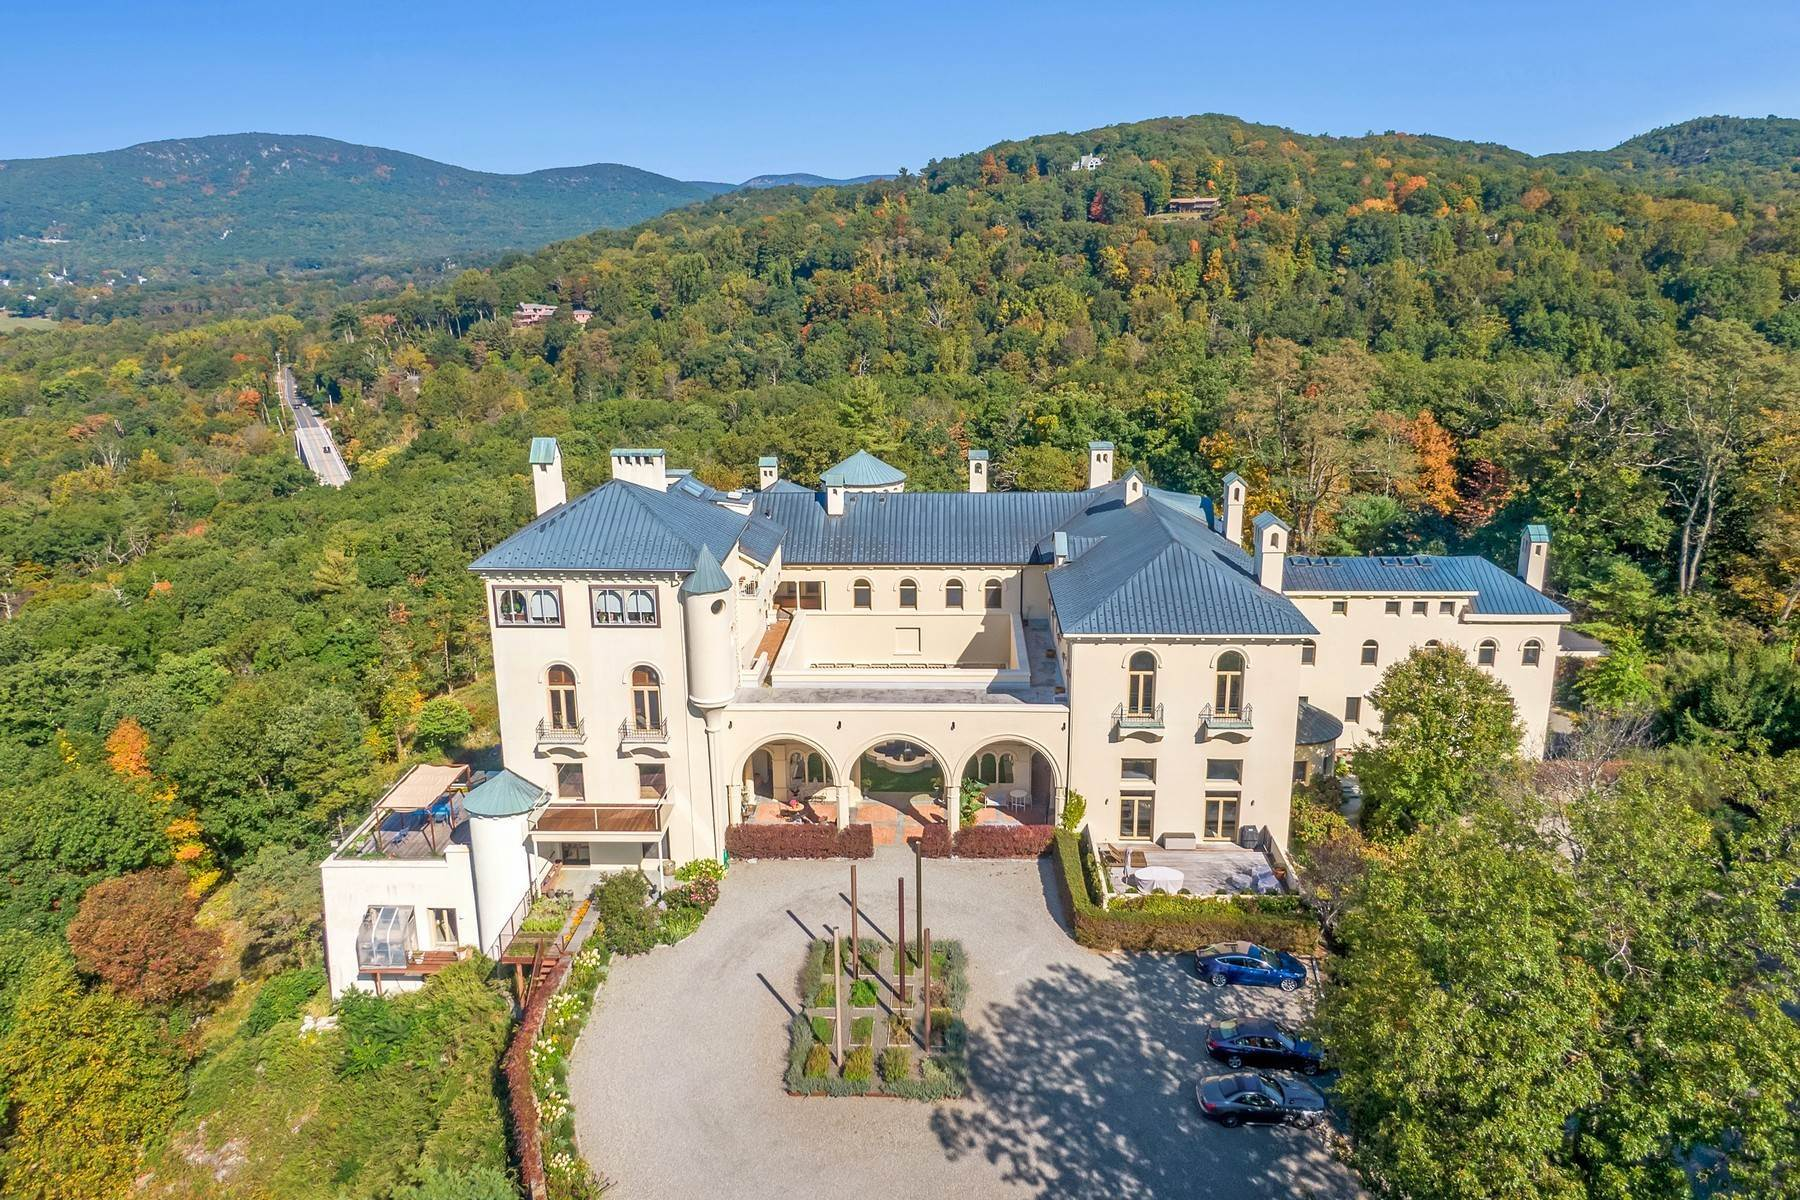 Property for Sale at Castle Overlooking the Hudson 57 Dicks Castle Road Garrison, New York 10524 United States